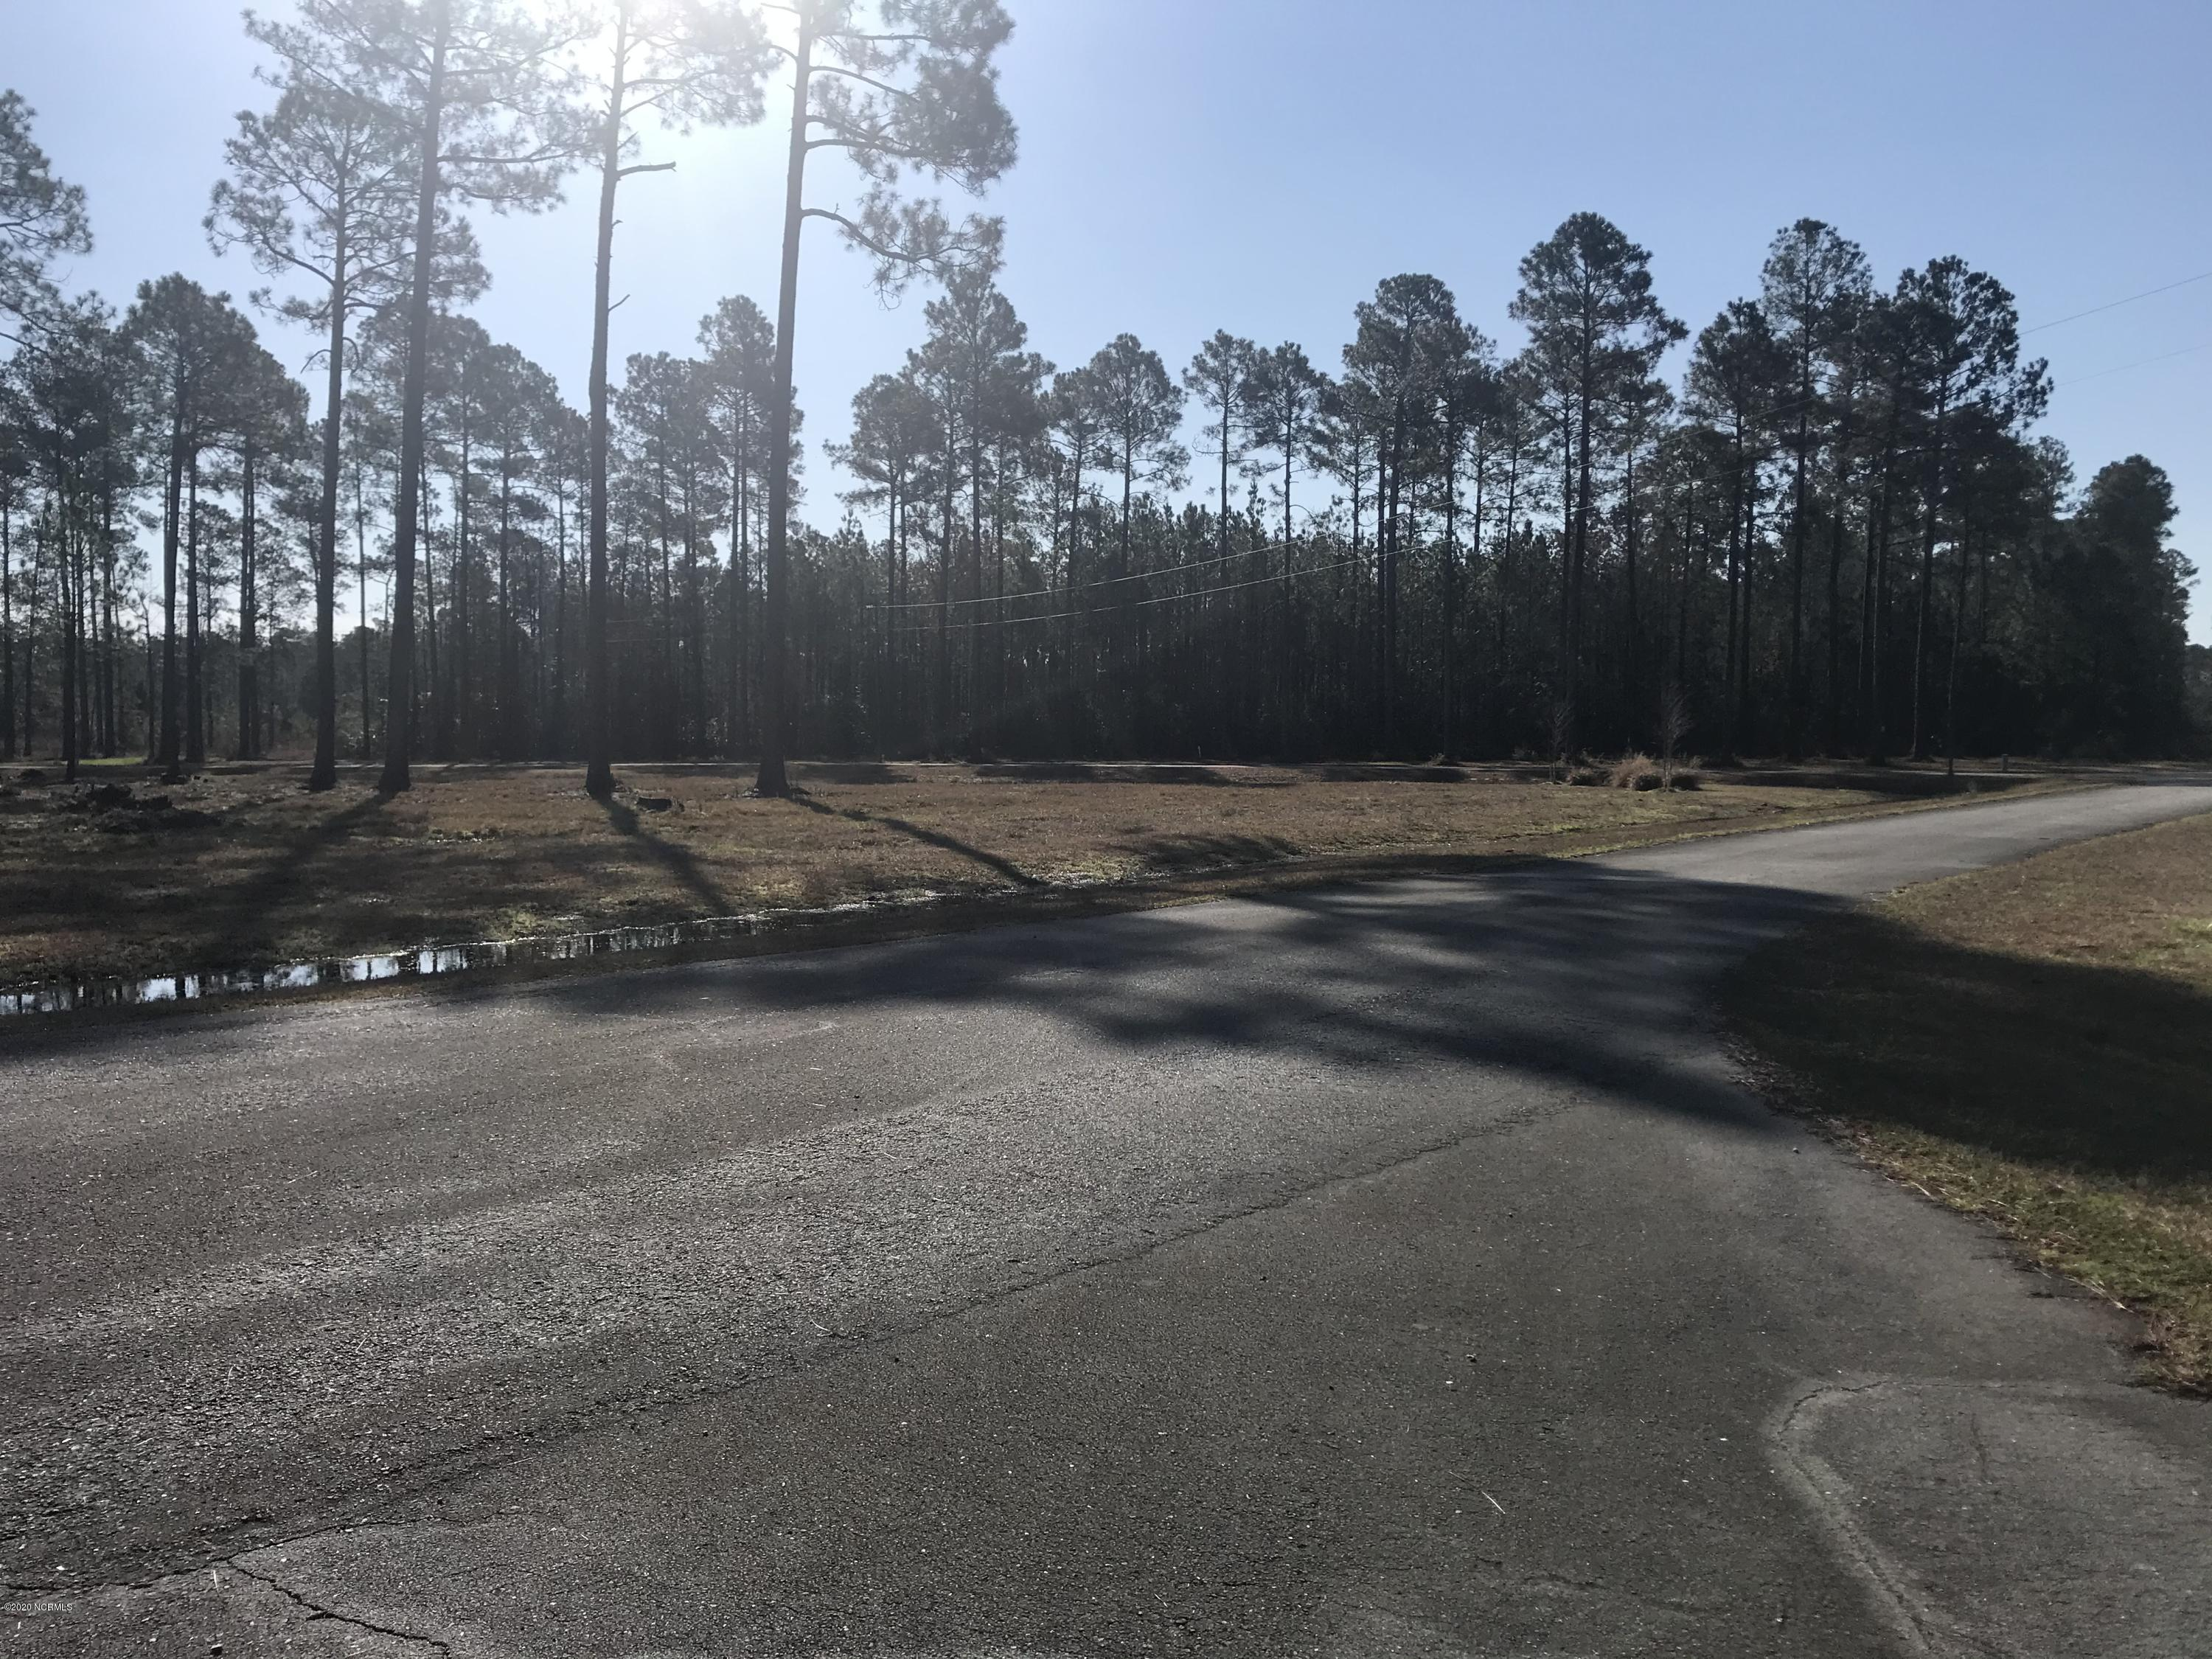 305 Paradox Point Drive, Aurora, North Carolina 27806, ,Residential land,For sale,Paradox Point,100211452